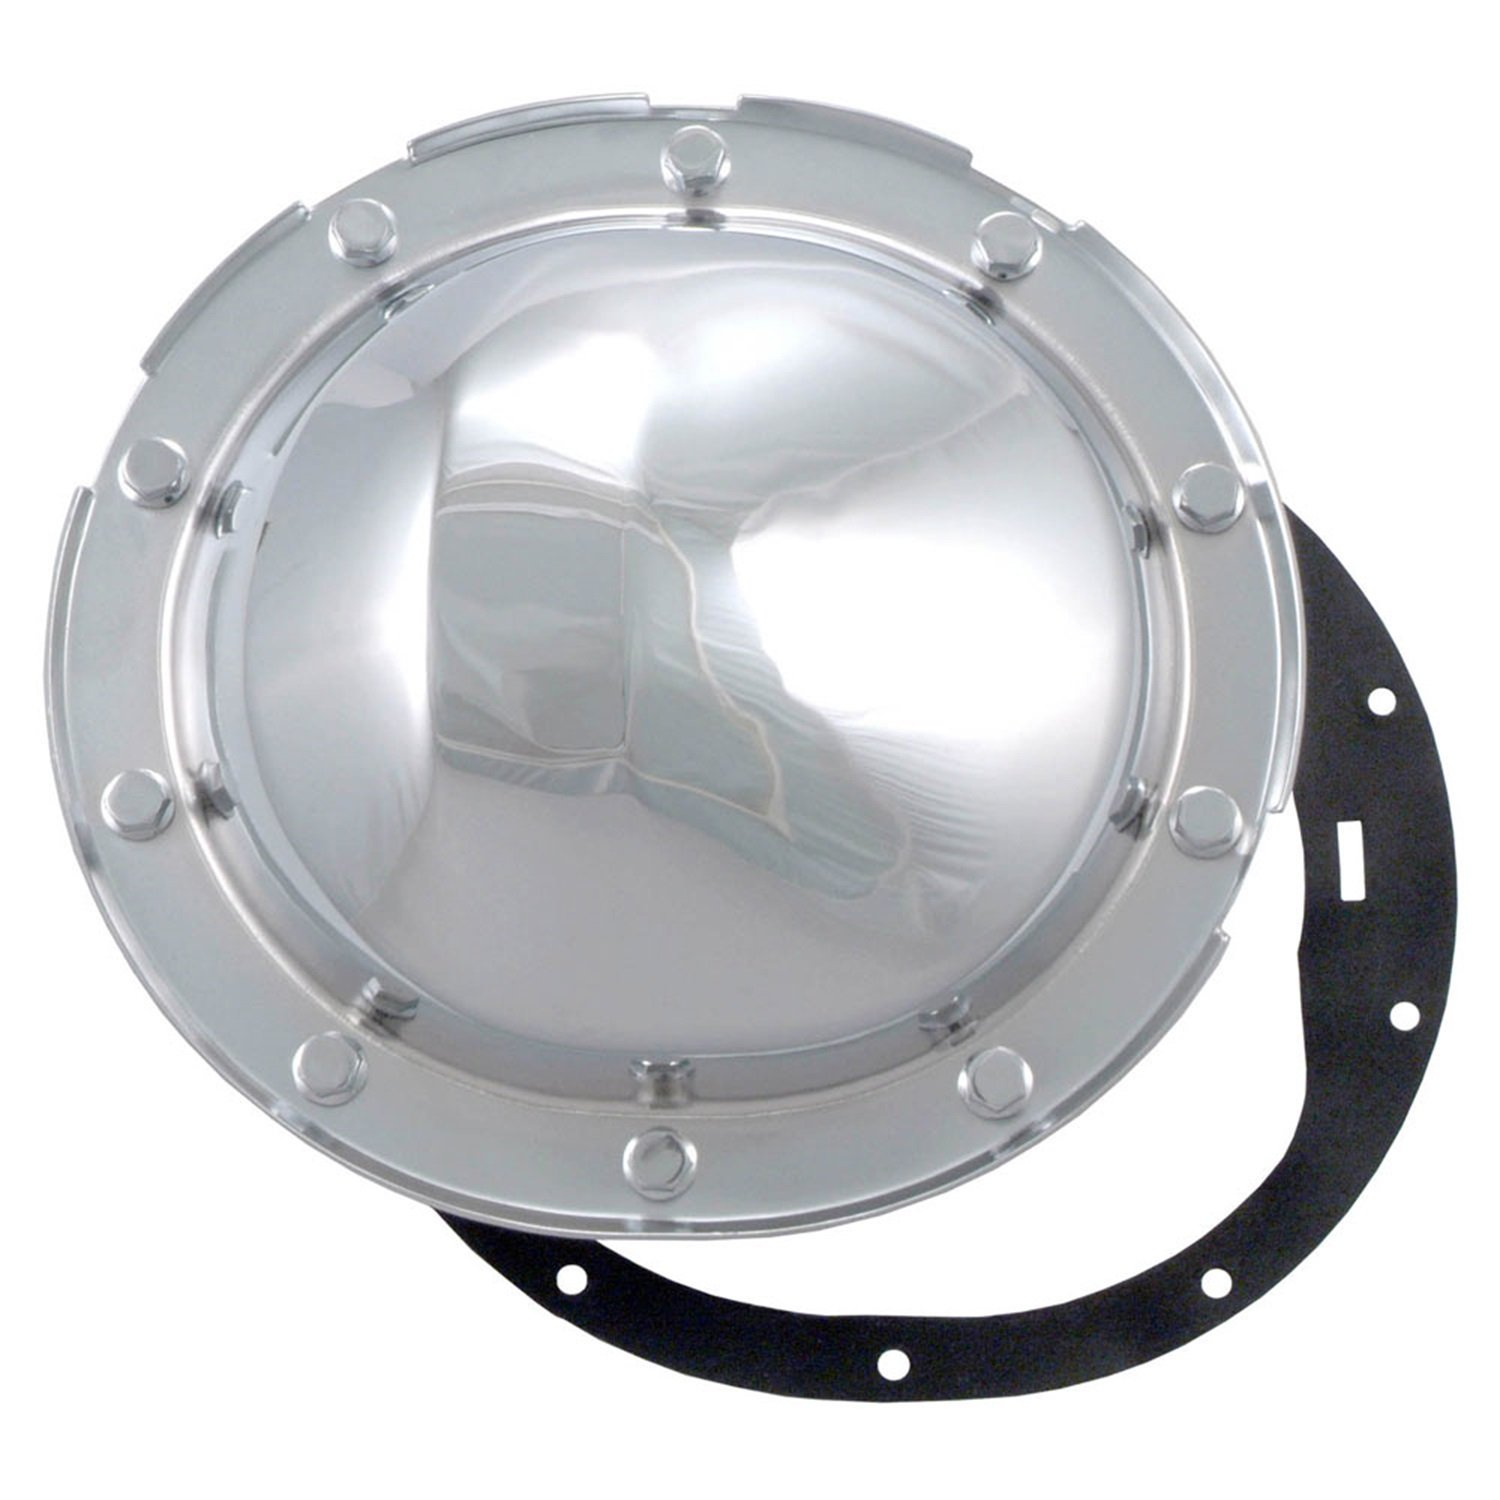 Spectre Performance 6087 Chrome Differential Cover for GM